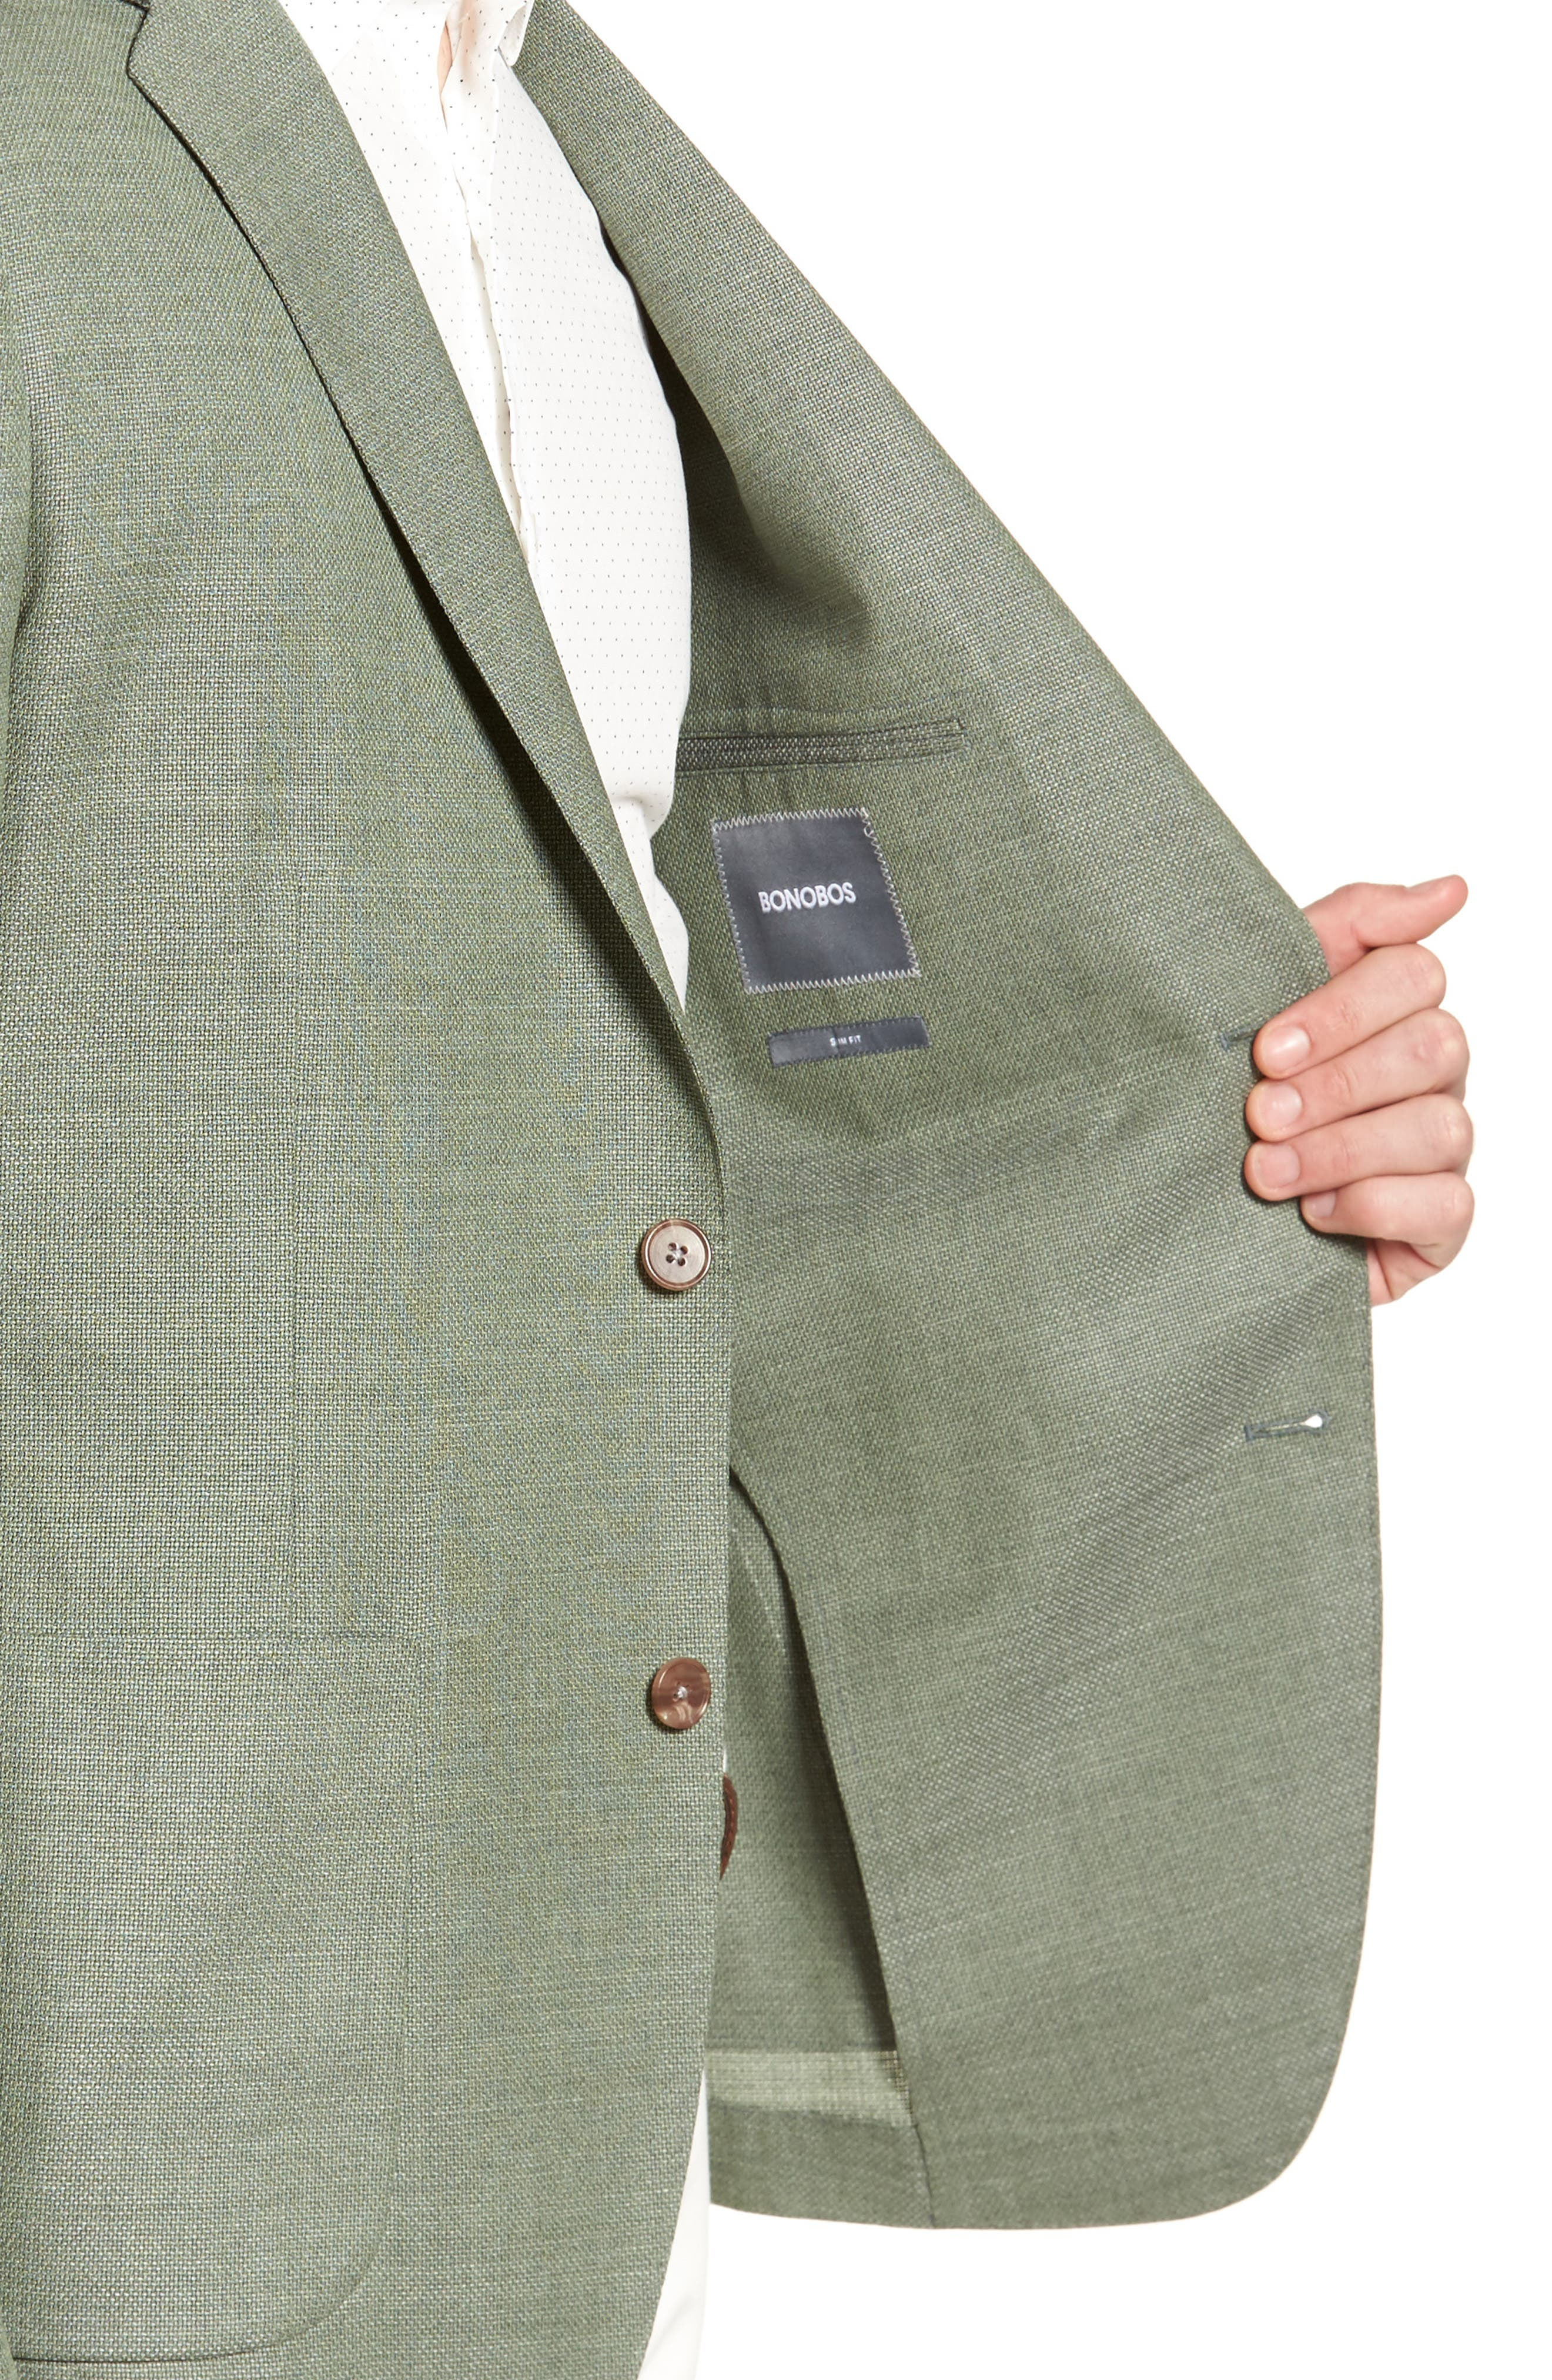 Trim Fit Wool Unconstructed Blazer,                             Alternate thumbnail 10, color,